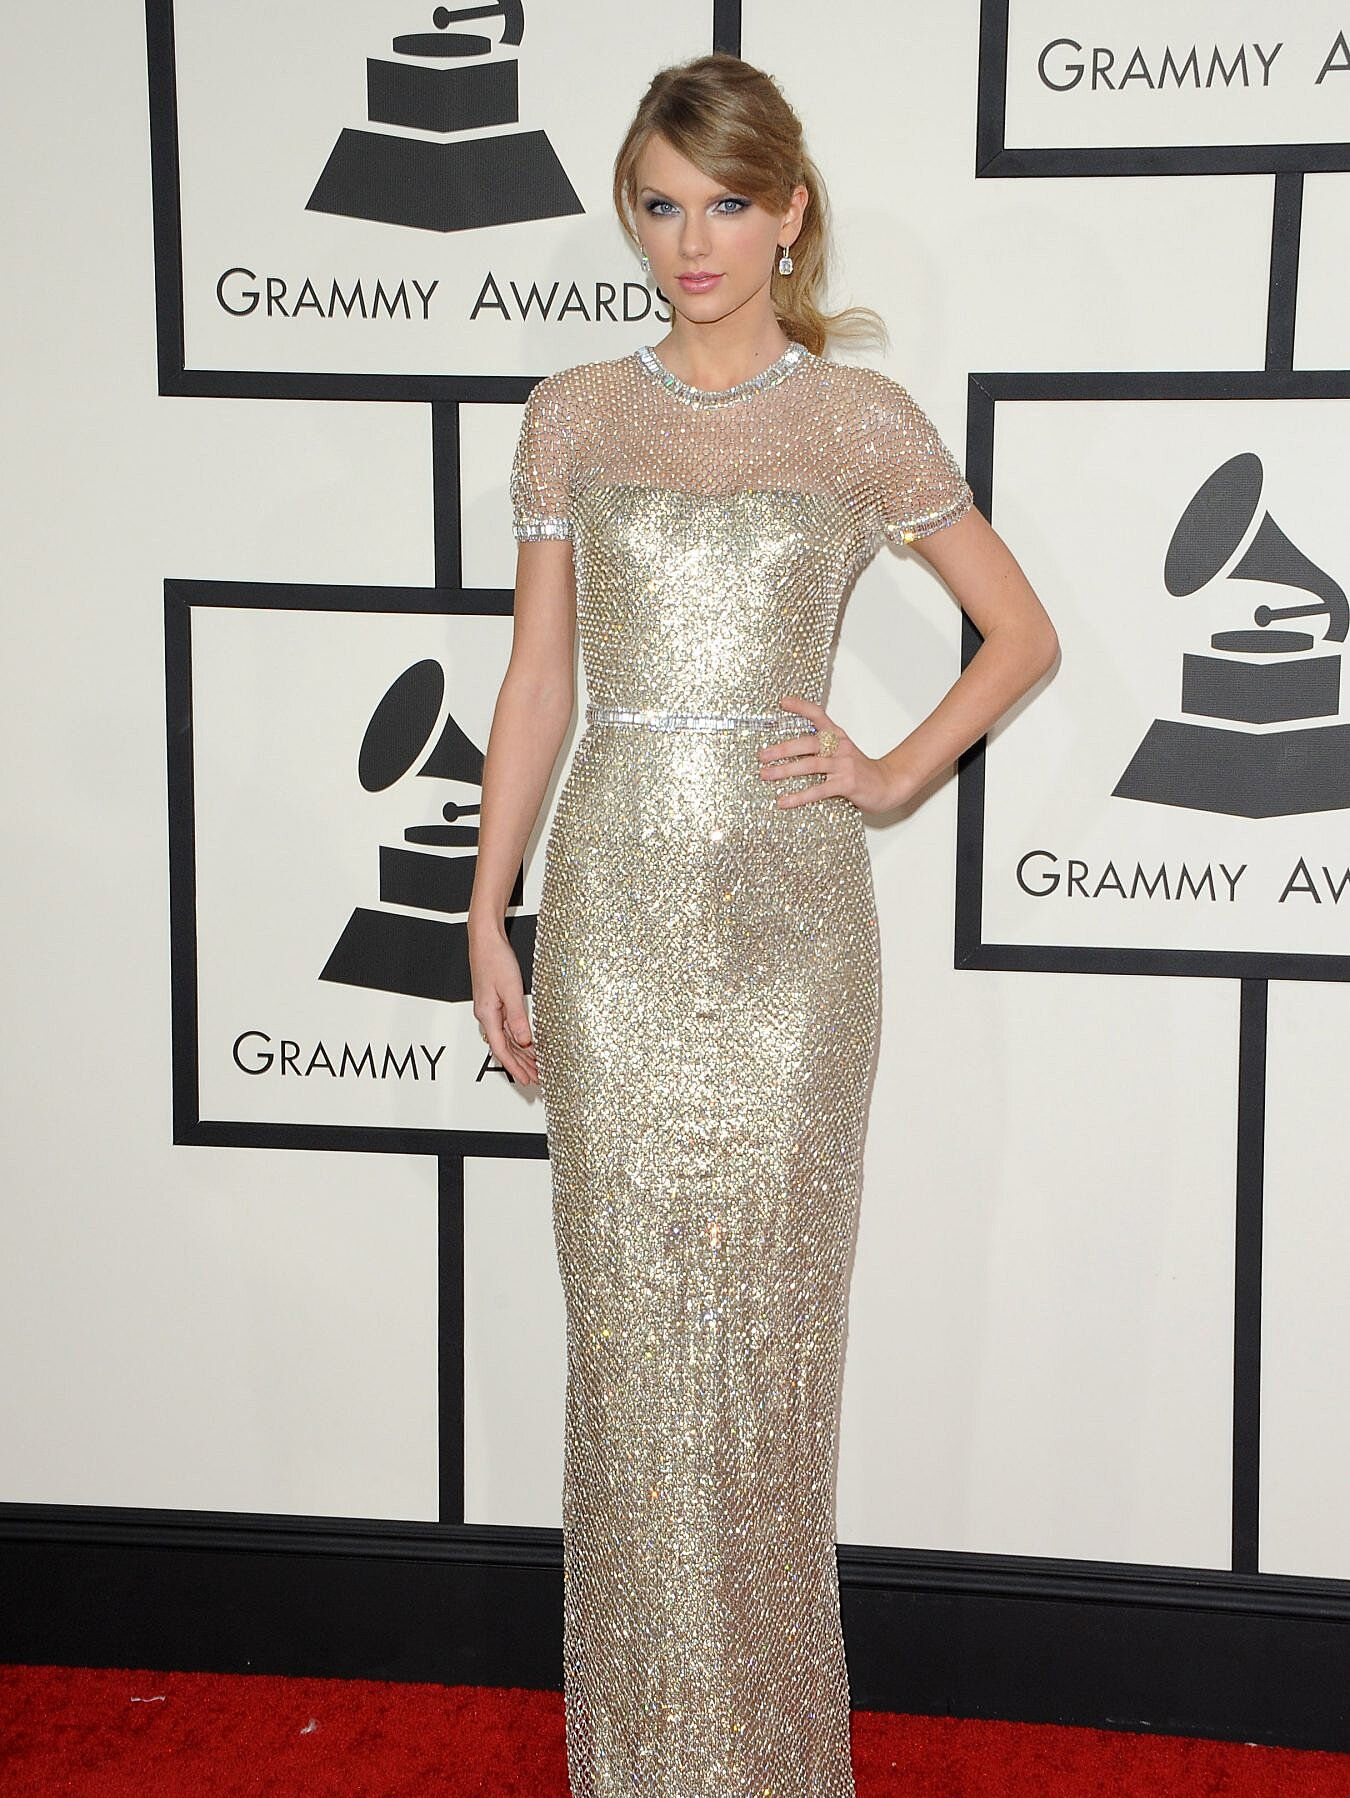 All Of Taylor Swift S Grammys Red Carpet Looks From 2008 To Now Hellogiggles